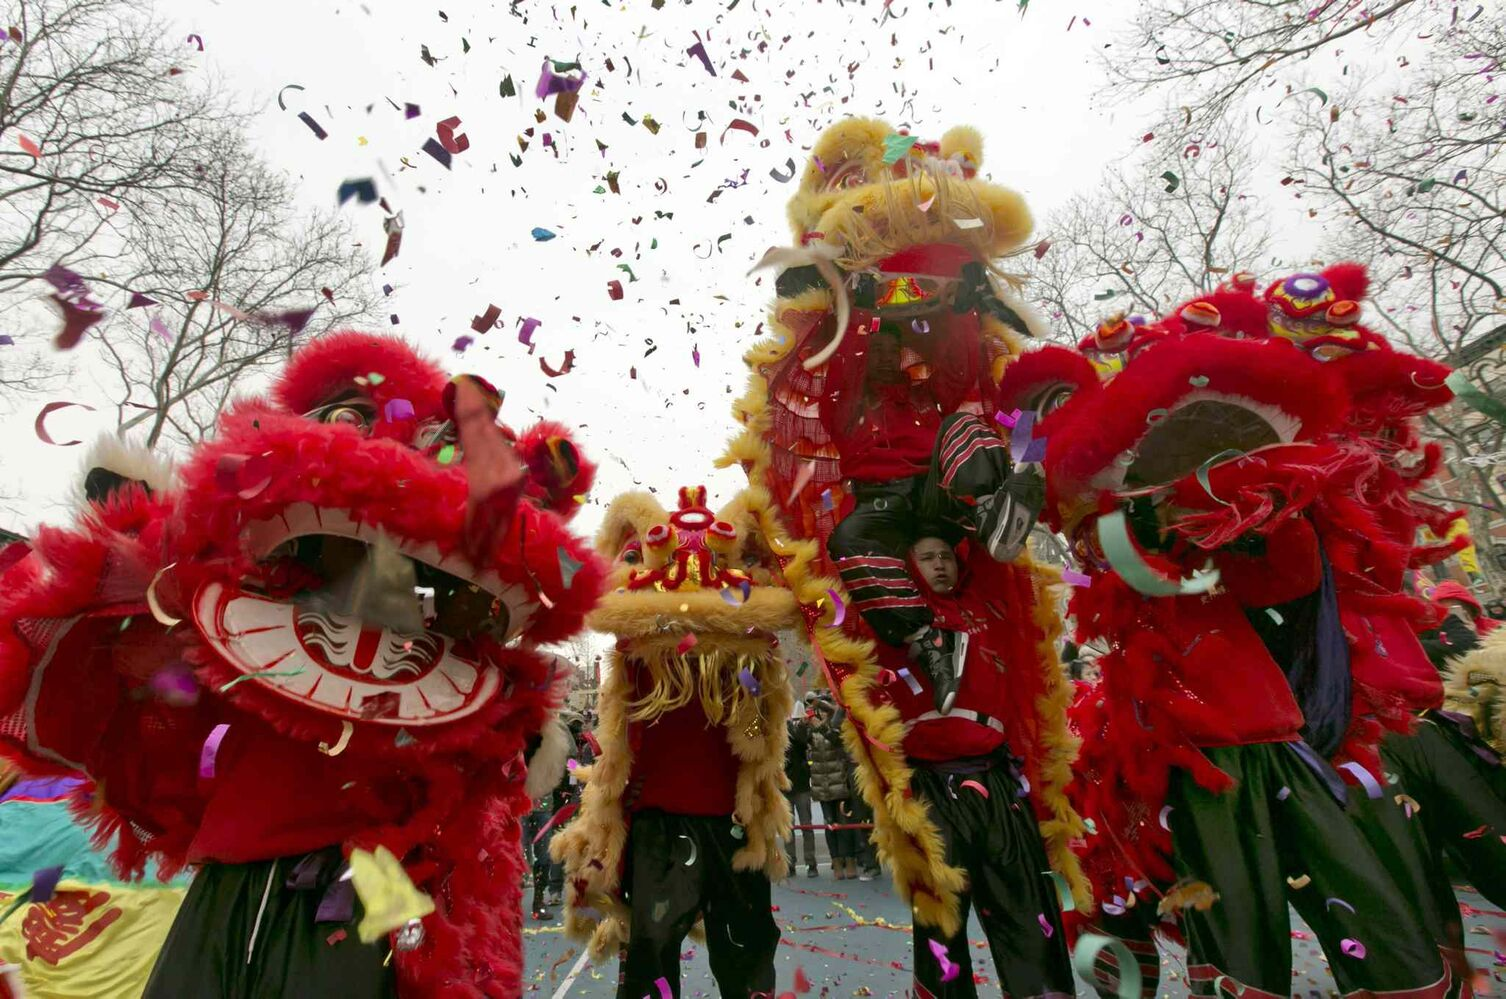 Lion dancers perform during the Asian Lunar New Year Firecracker Ceremony and Cultural Festival, in Roosevelt Park, in New York's Chinatown, Friday, Jan. 31, 2014.